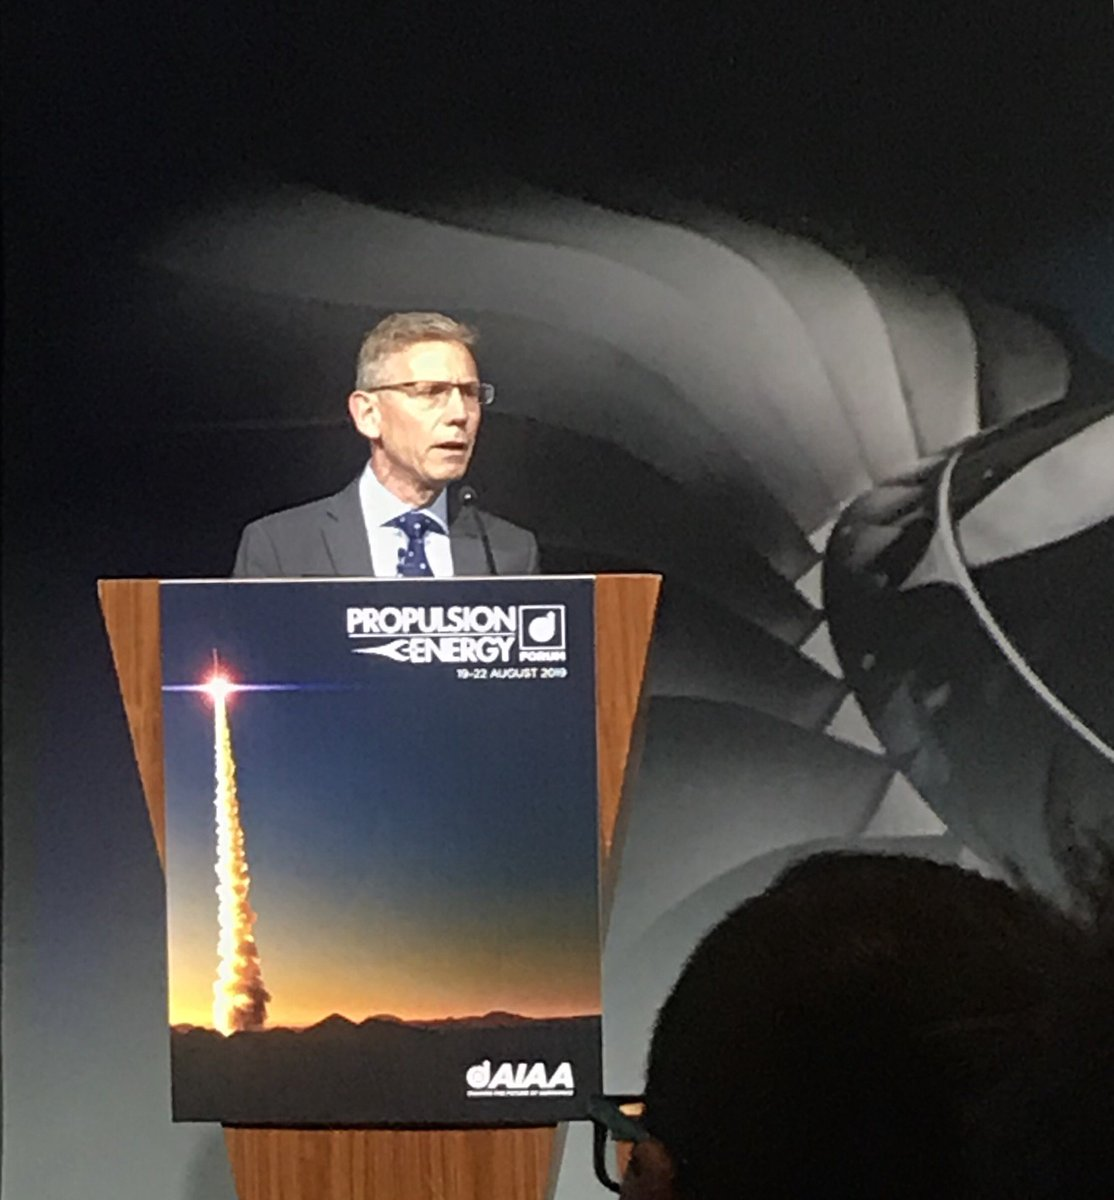 @RollsRoyce @aiaa @RollsRoyceNA Flying is a force for good but we have the duty to minimise our impact on the planet, return the planet in good conditions to next generations, we have a duty to investors and we want to attract the best talent. #AiaaPropEnergy 🍃